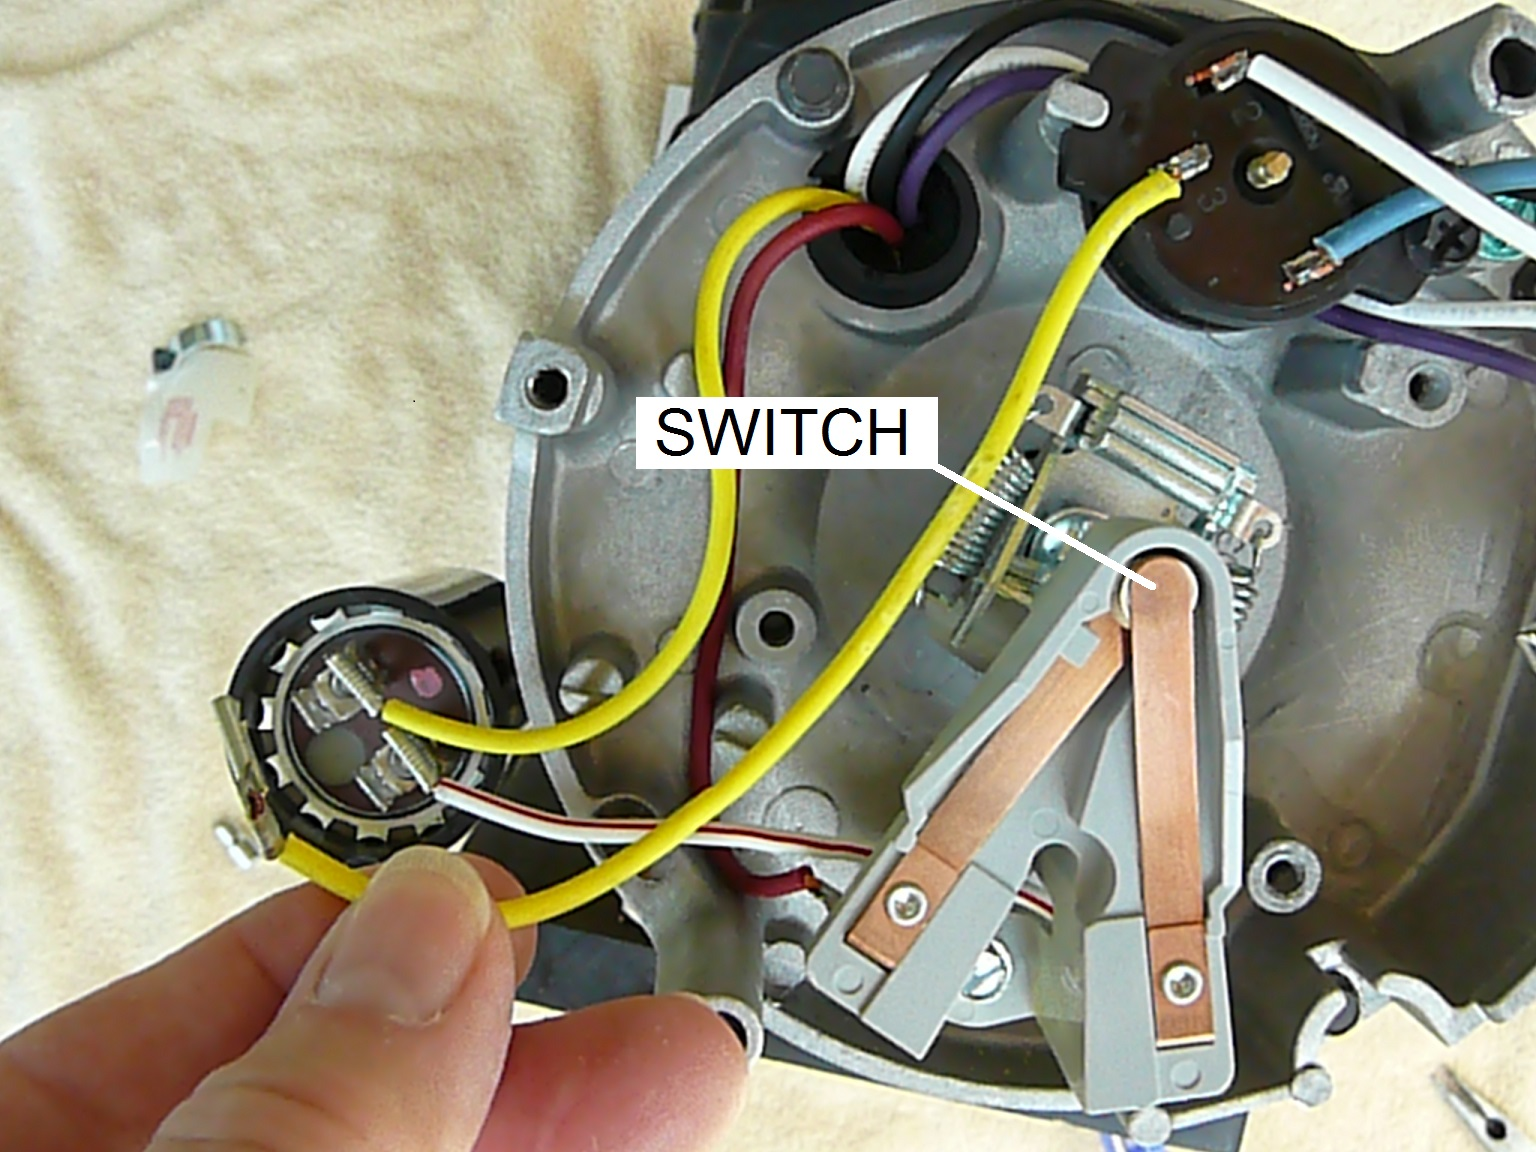 ao smith ust1102 wiring diagram starter solenoid for lawn mower how to replace motor parts overview inyopools com step 3